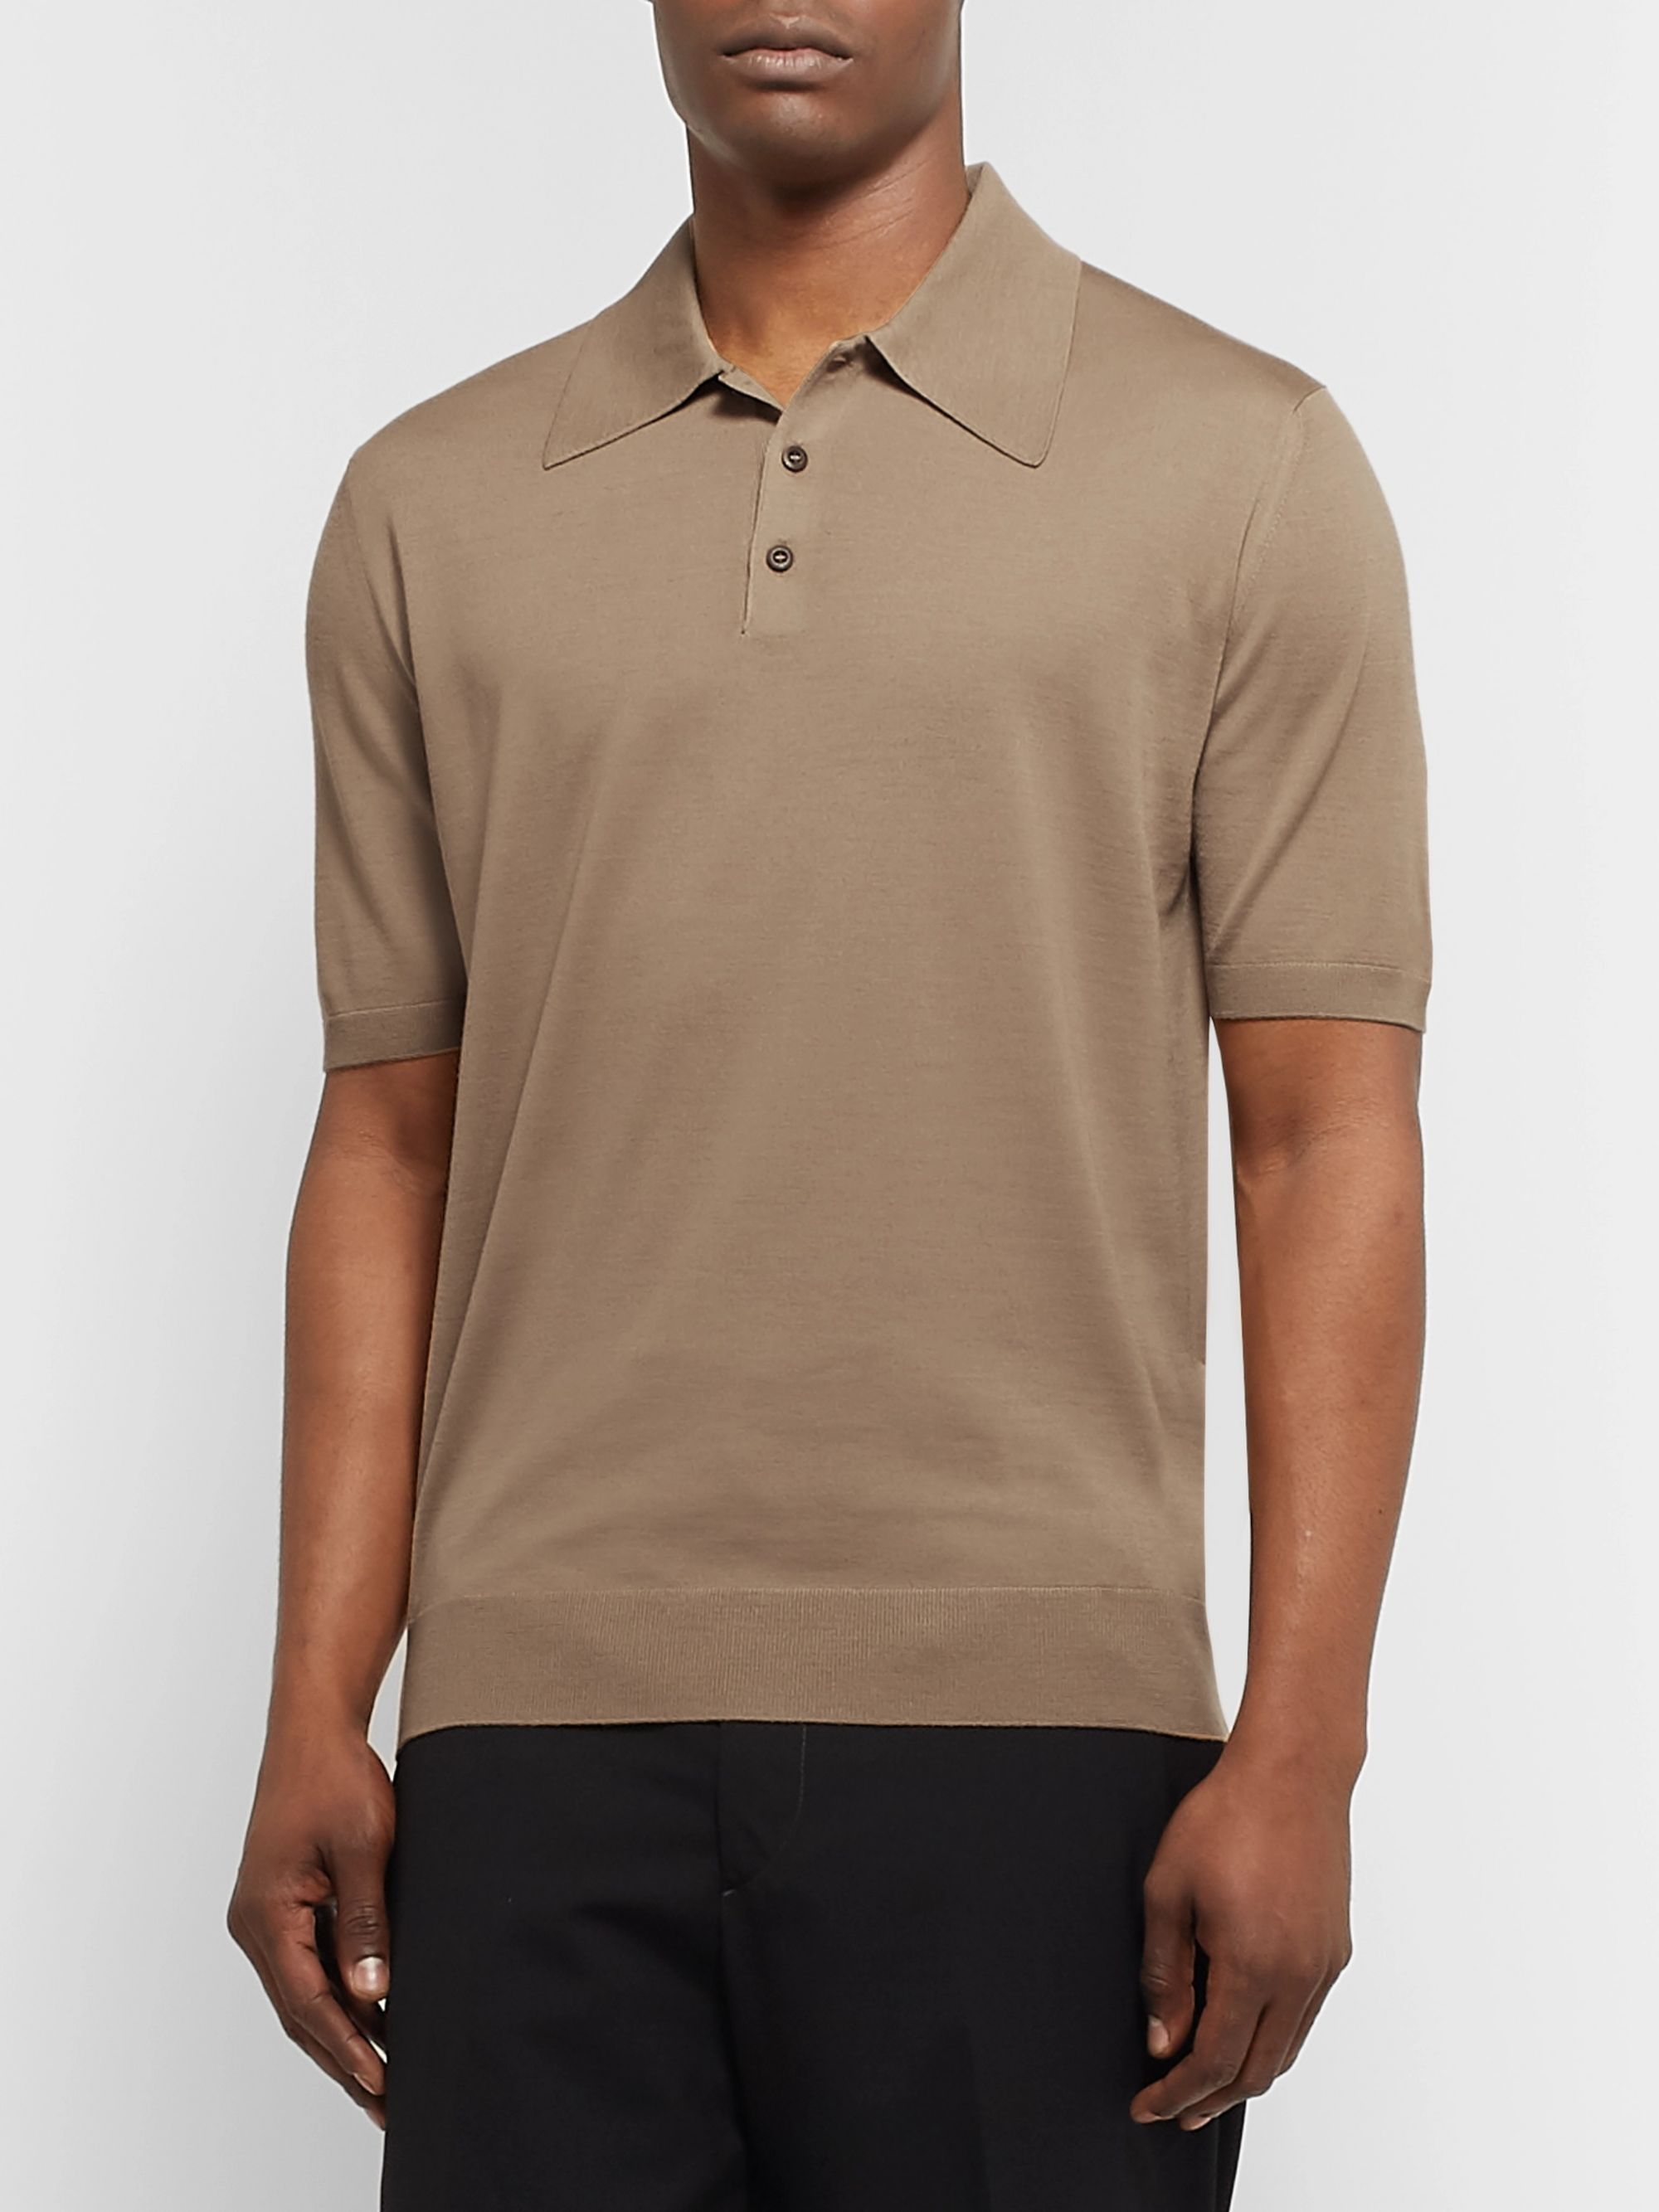 Prada Virgin Wool Polo Shirt